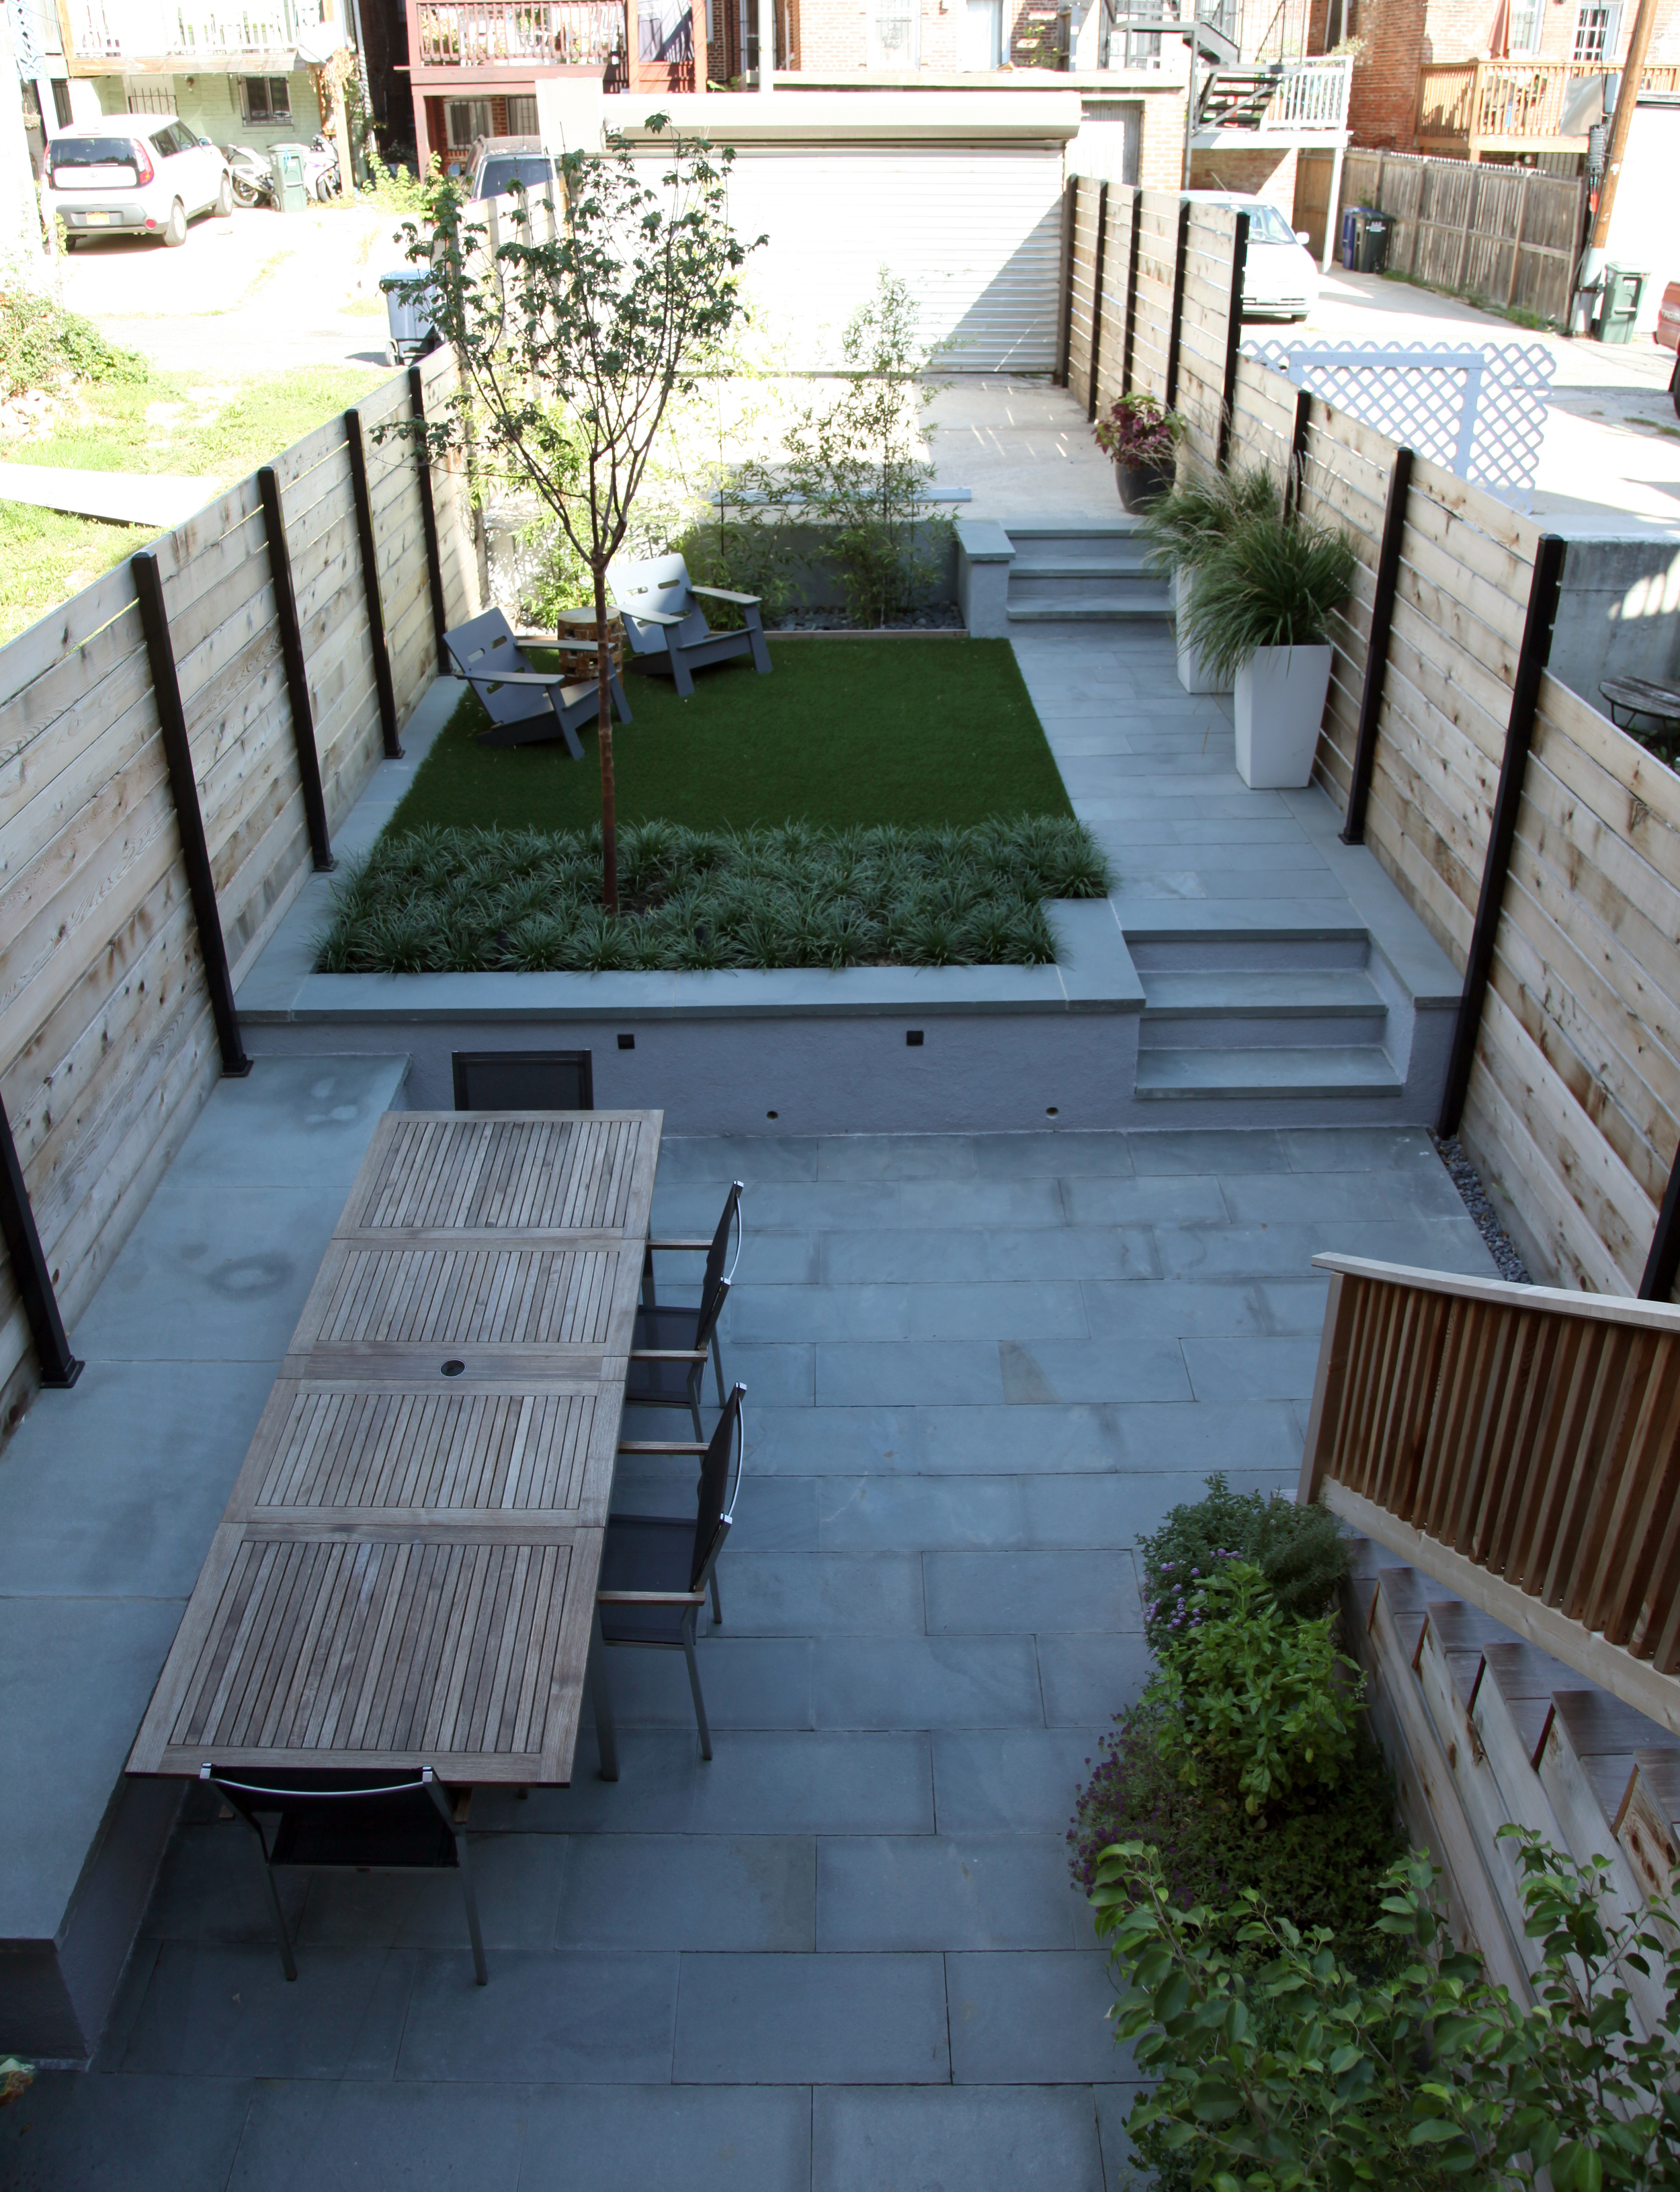 Project Location: Washington, DC (Columbia Heights)  Completion: Spring 2015  General Contractor: Redux Garden & Home  Primary Material Palette: thermal finish select blue bluestone, cedar, stucco concrete, synthetic turf, ipe  Photos By: Moody Landscape Architecture